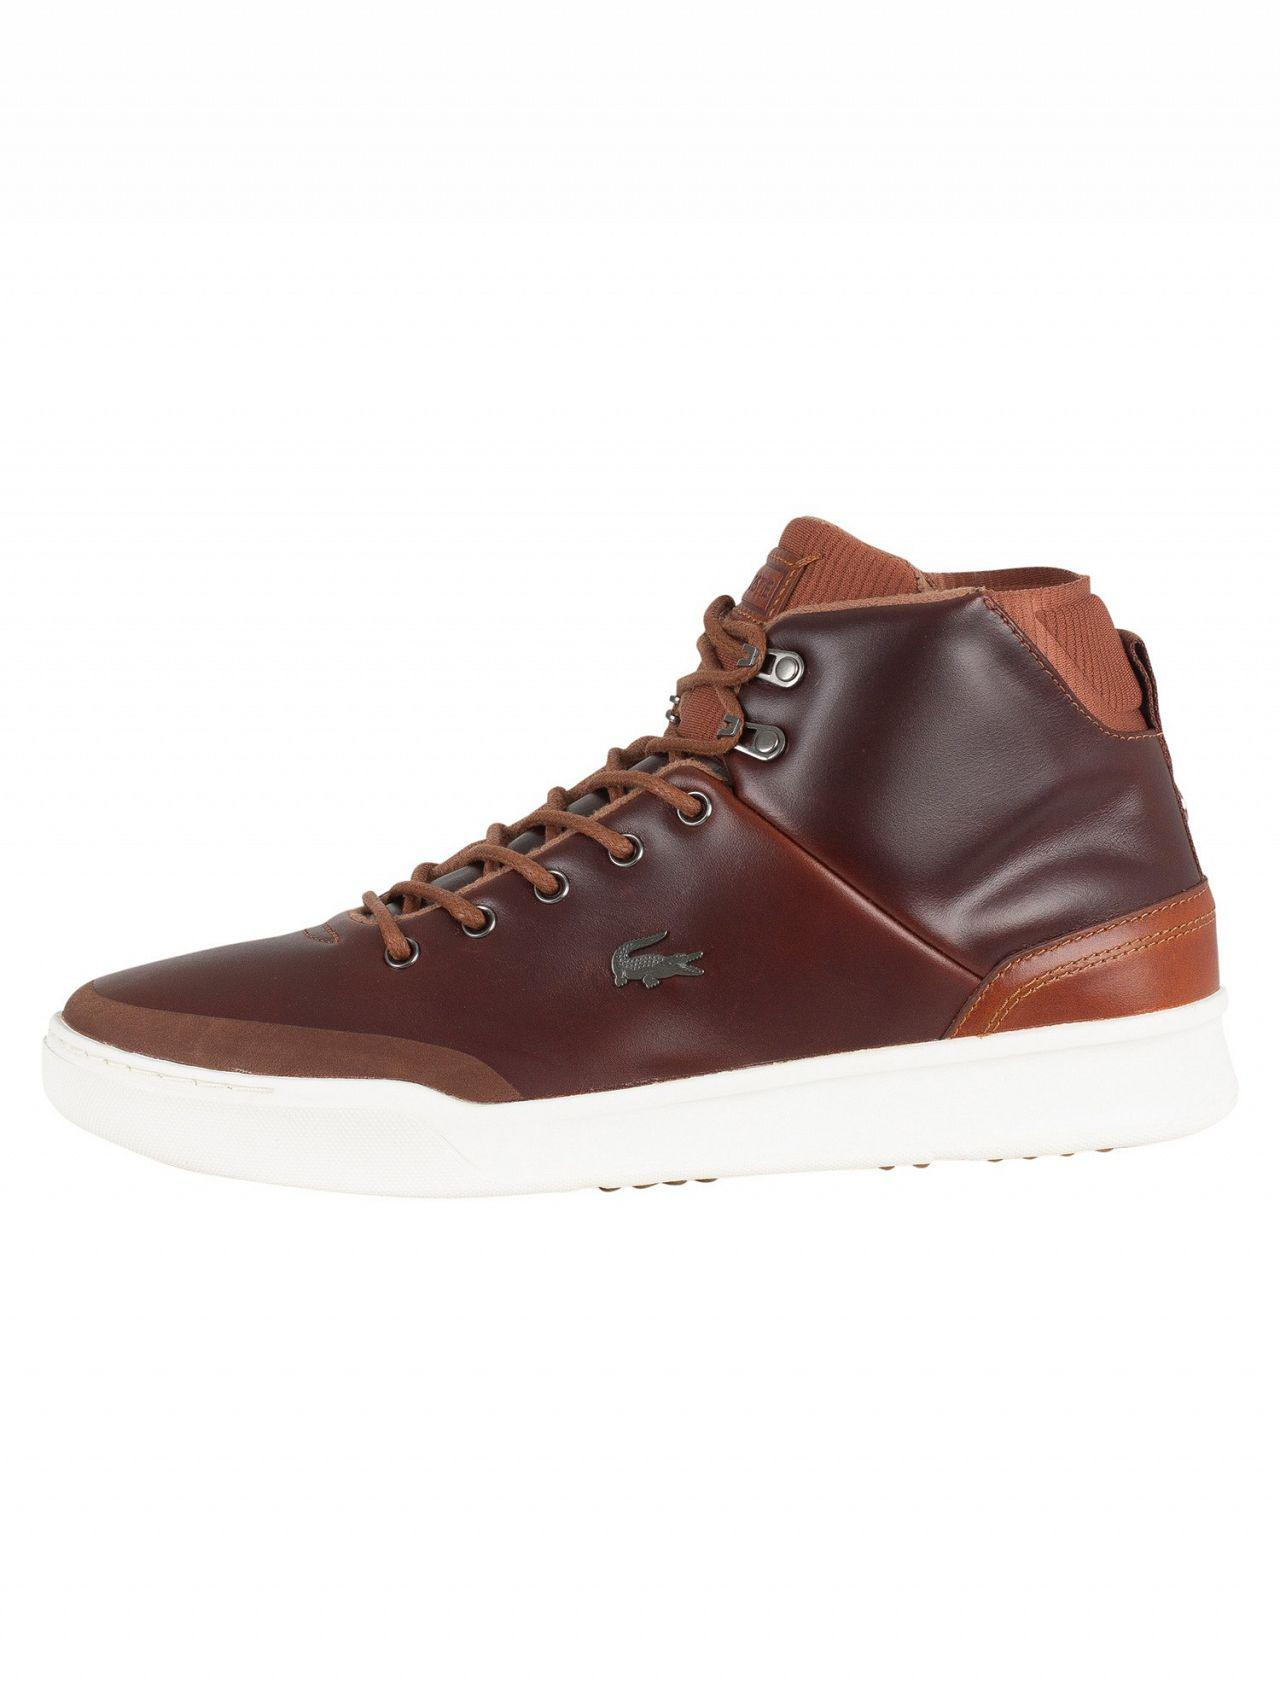 Lyst - Lacoste Tan brown Explorateur Classic 318 1 Cam Trainers in ... a231ee93ca